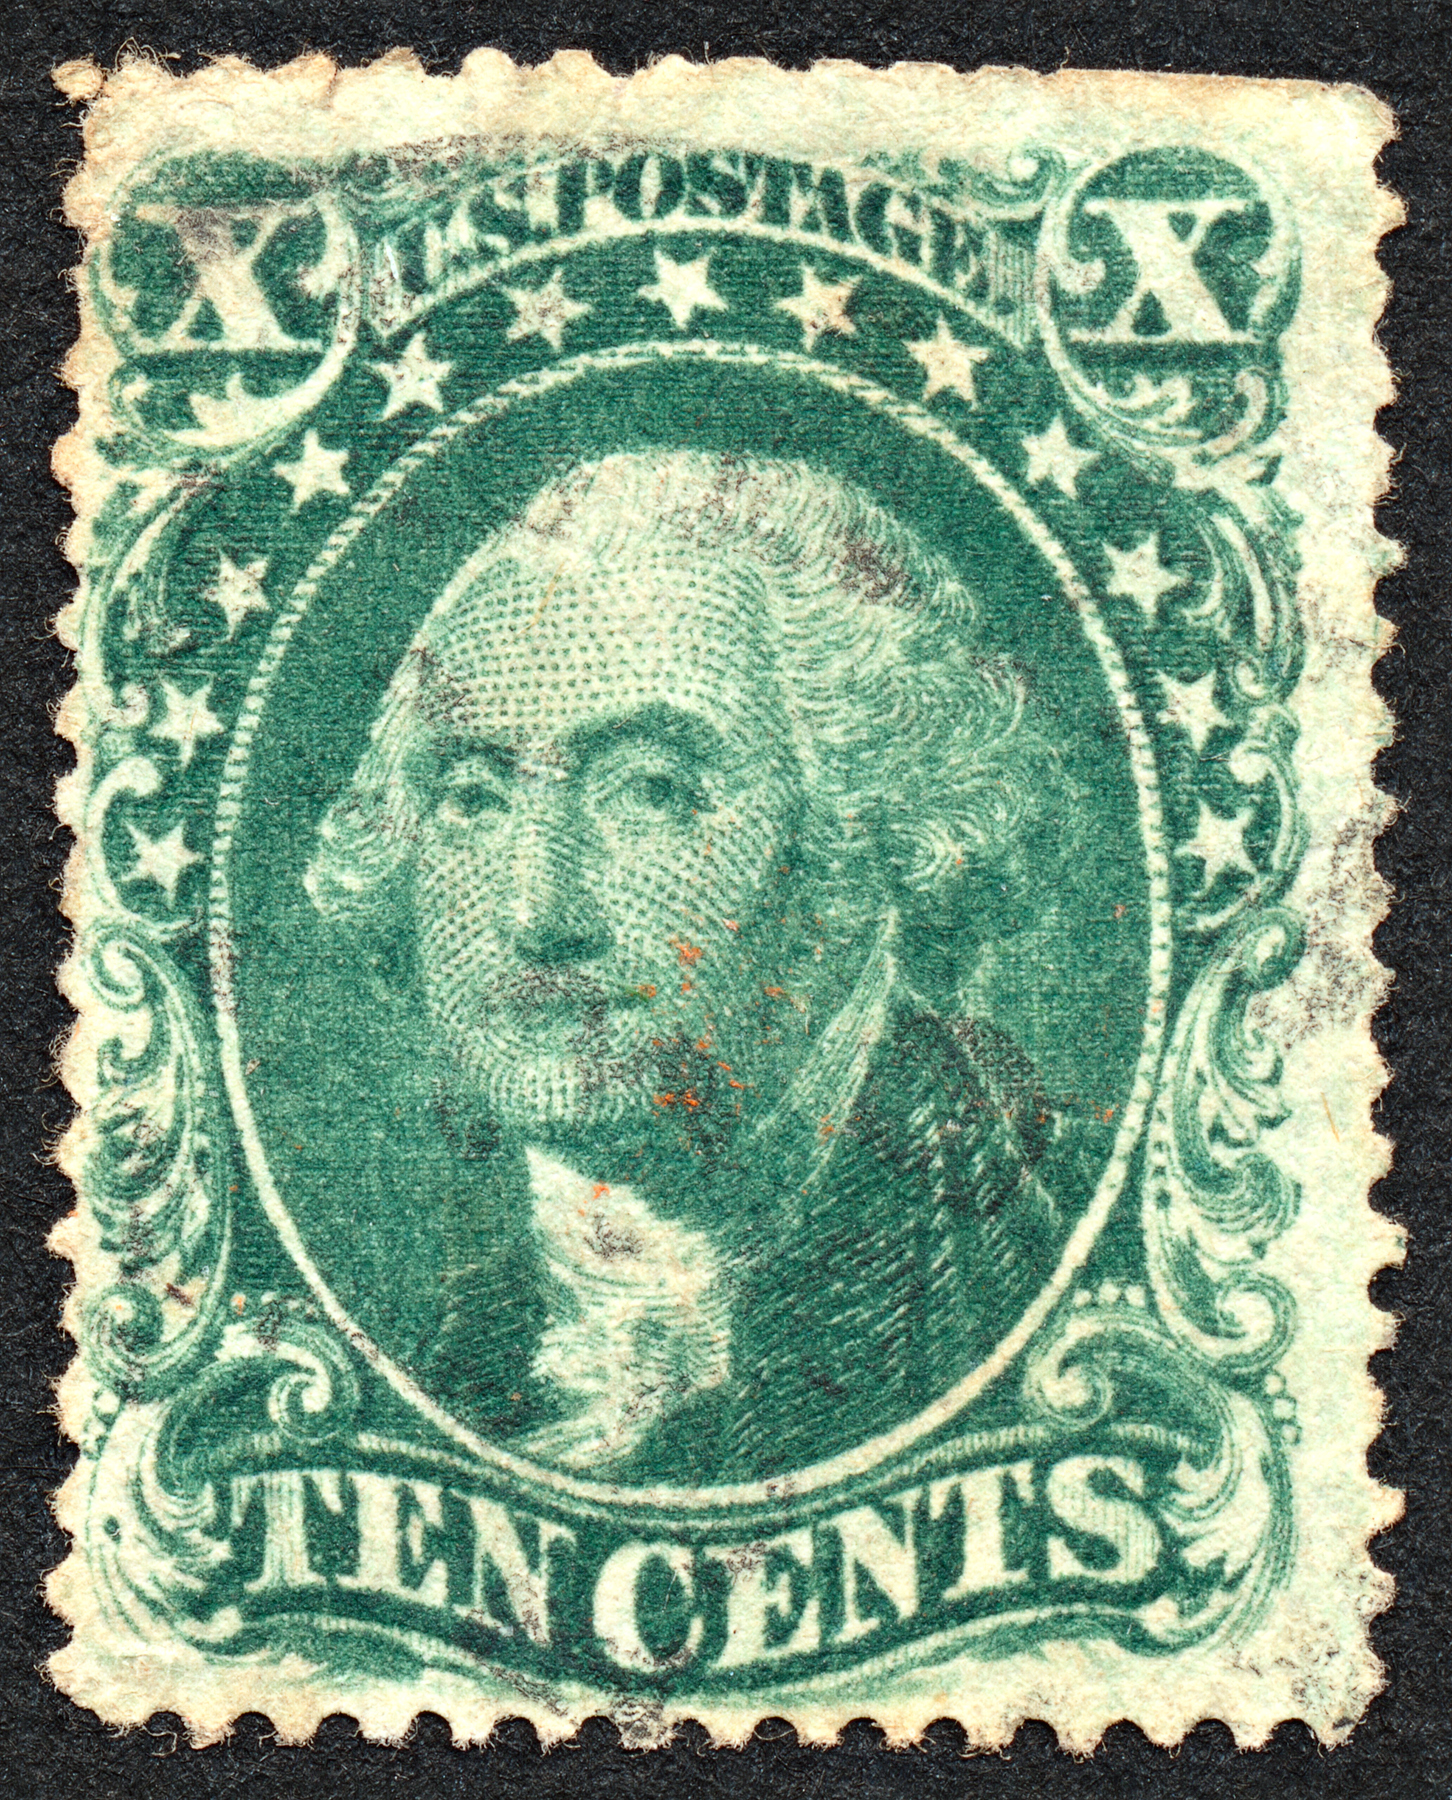 Green George Washington Stamp, 10, Somadjinn, Scrapbooking, Scrapbook, HQ Photo